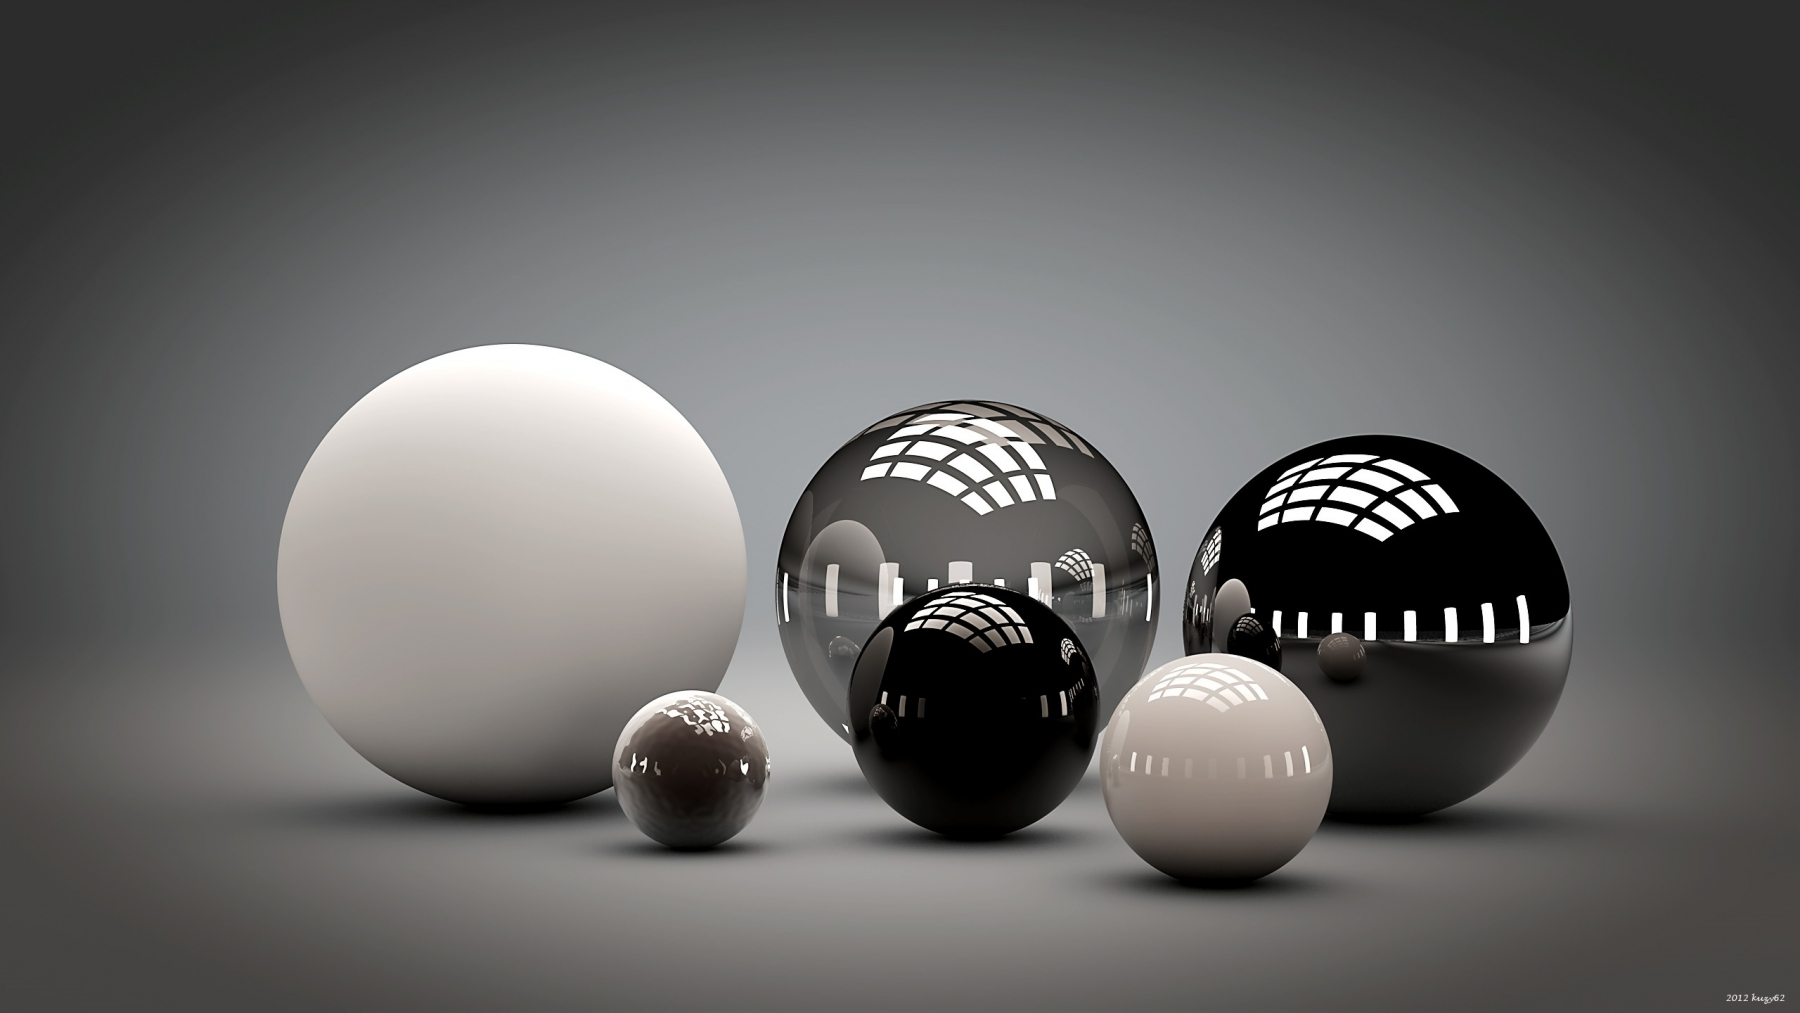 balls_shape_sleek_reflection_54783_2560x1440